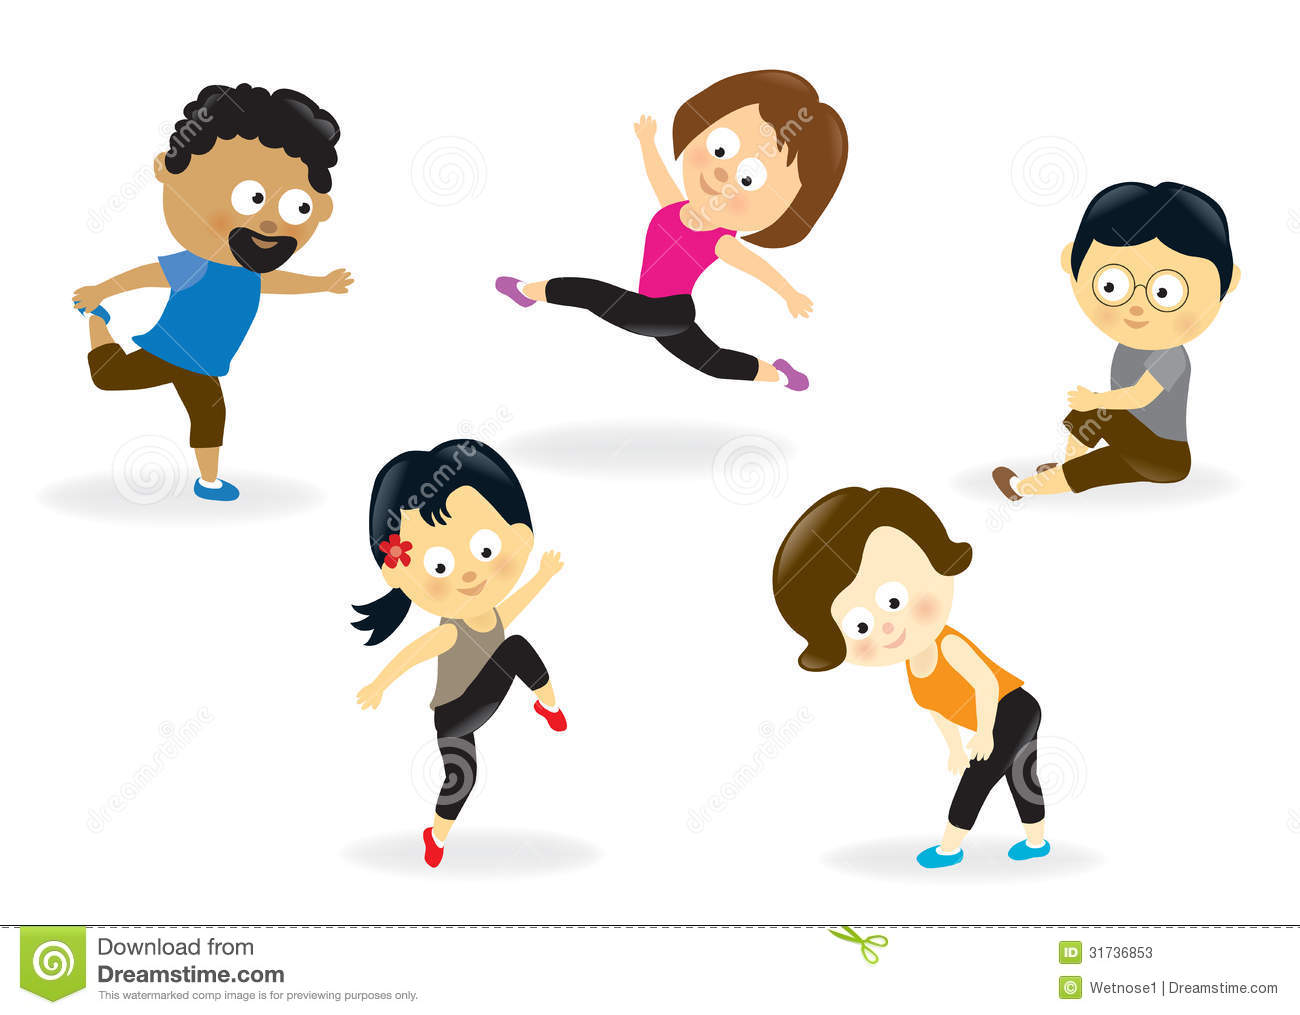 Aerobic dance clipart clip royalty free stock Aerobics Clipart & Look At Clip Art Images - ClipartLook clip royalty free stock